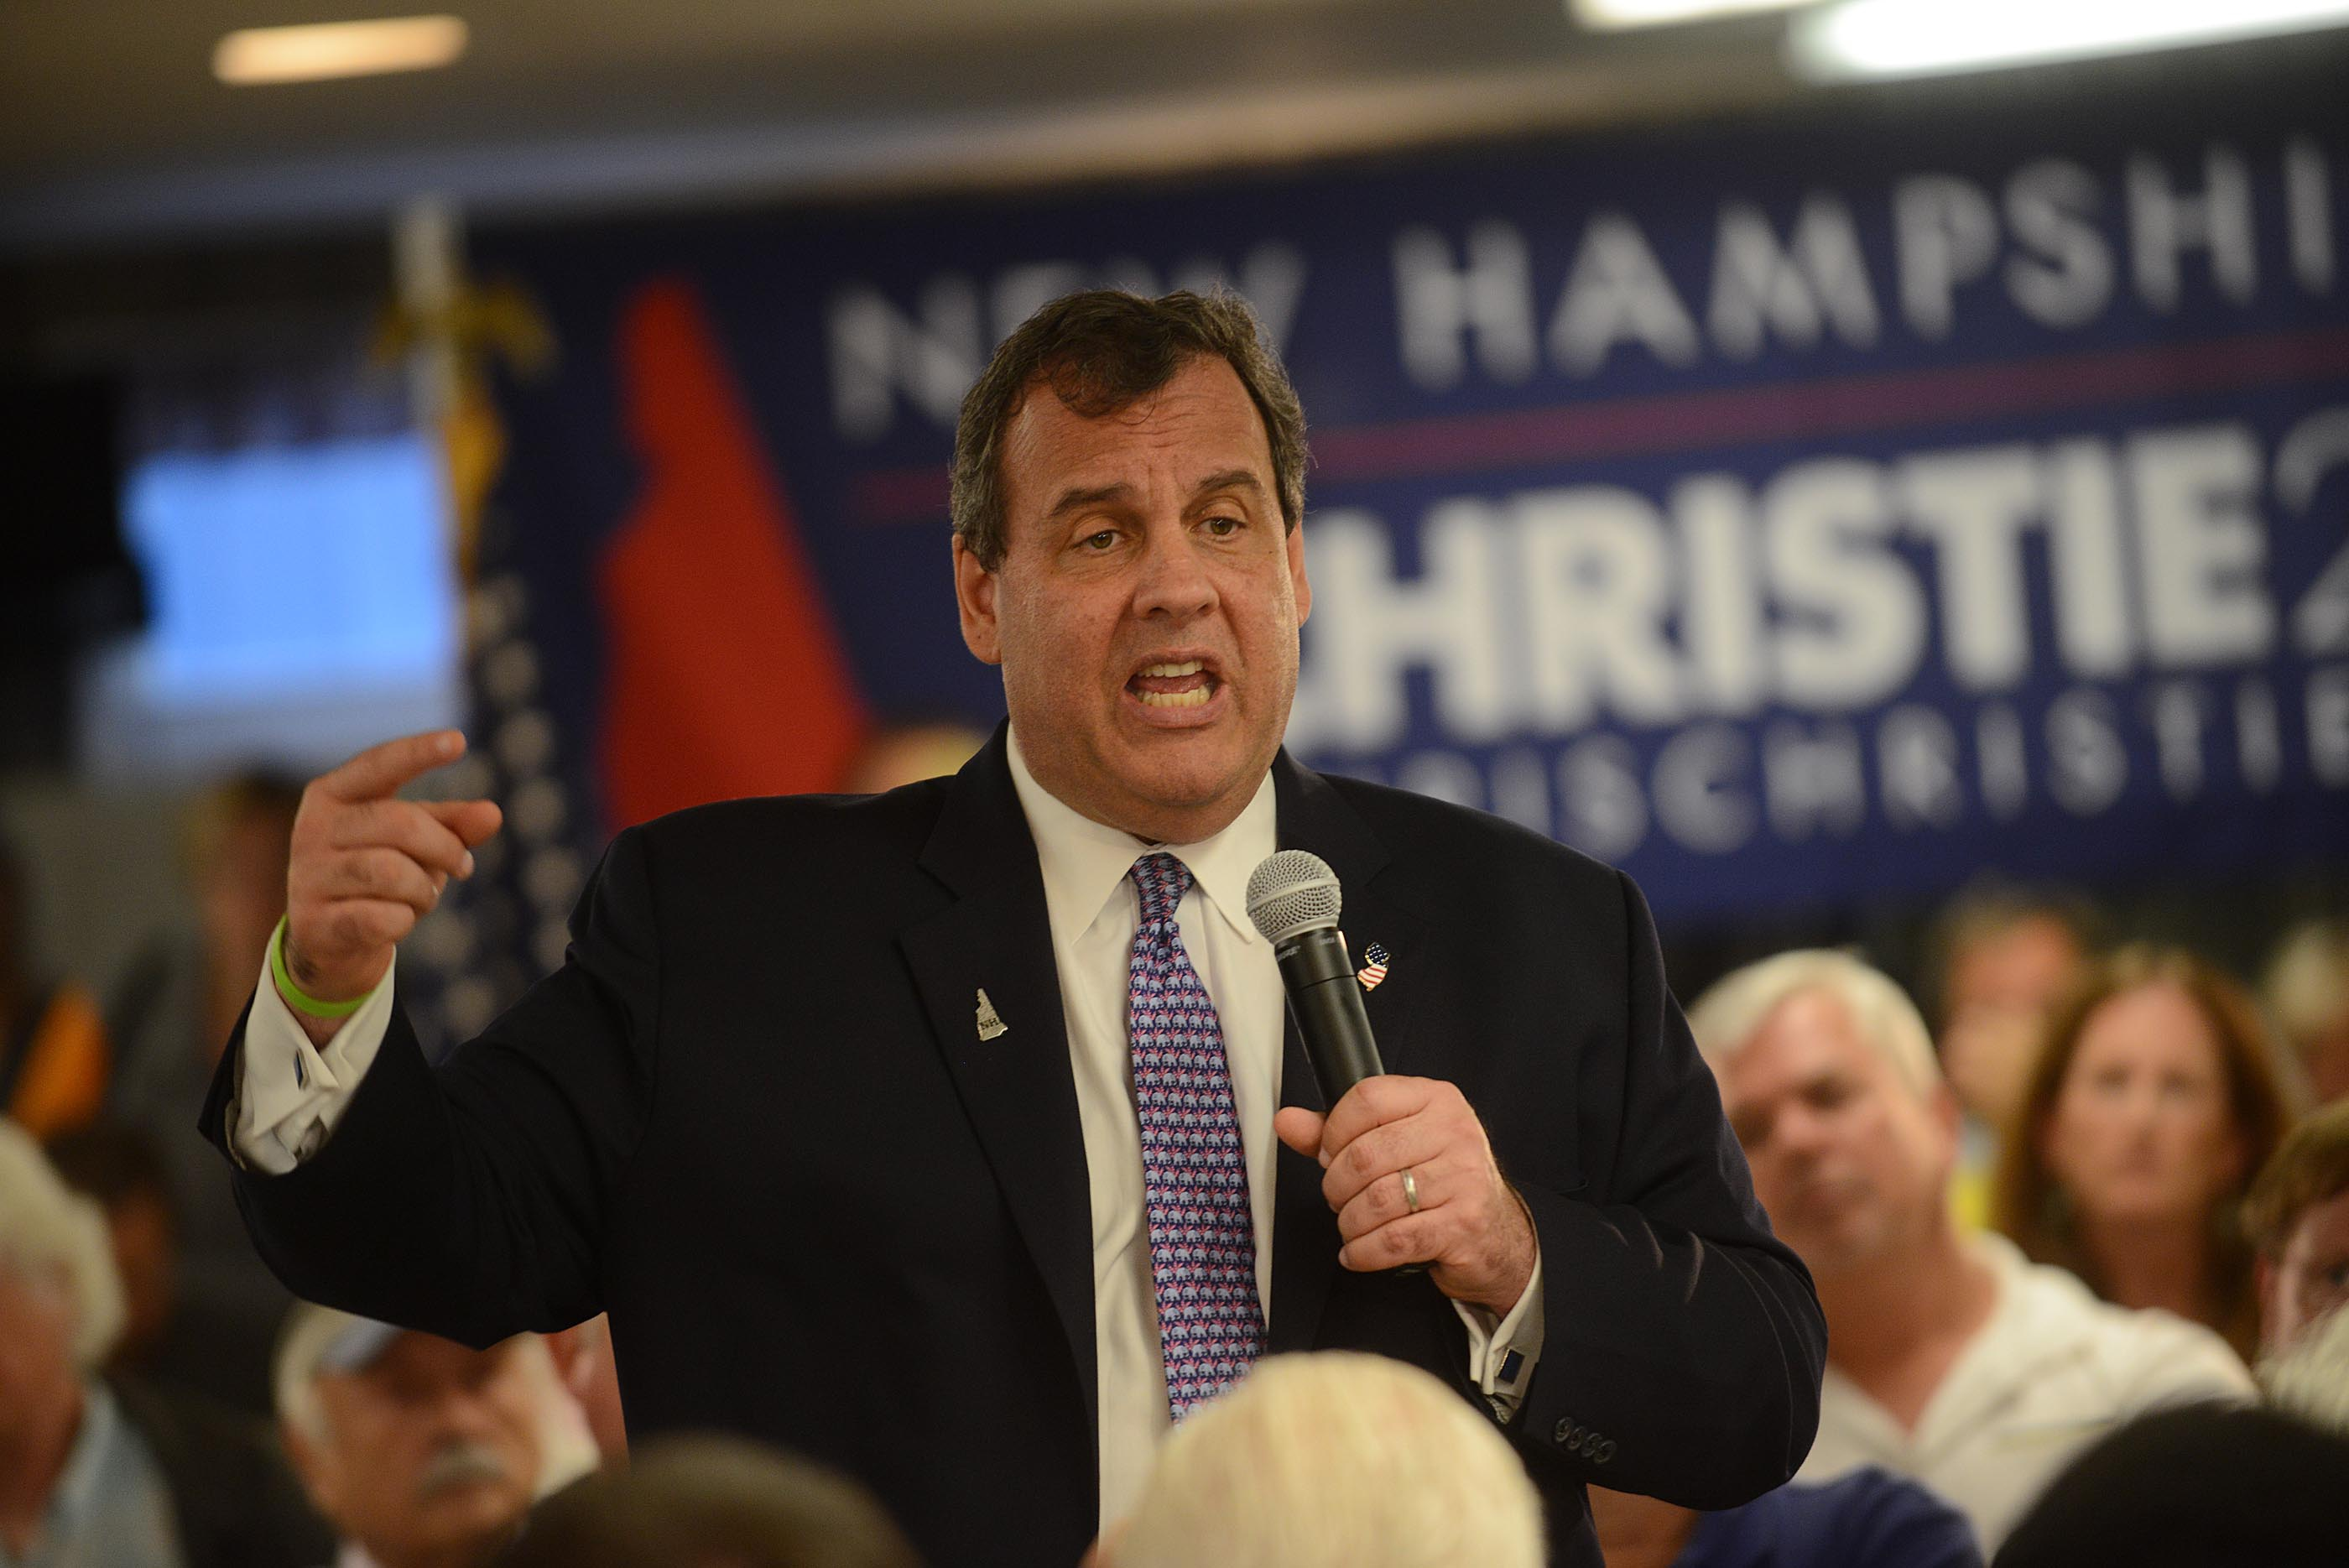 NJ Governor And GOP Presidential Candidate Chris Christie Campaigns In New Hampshire